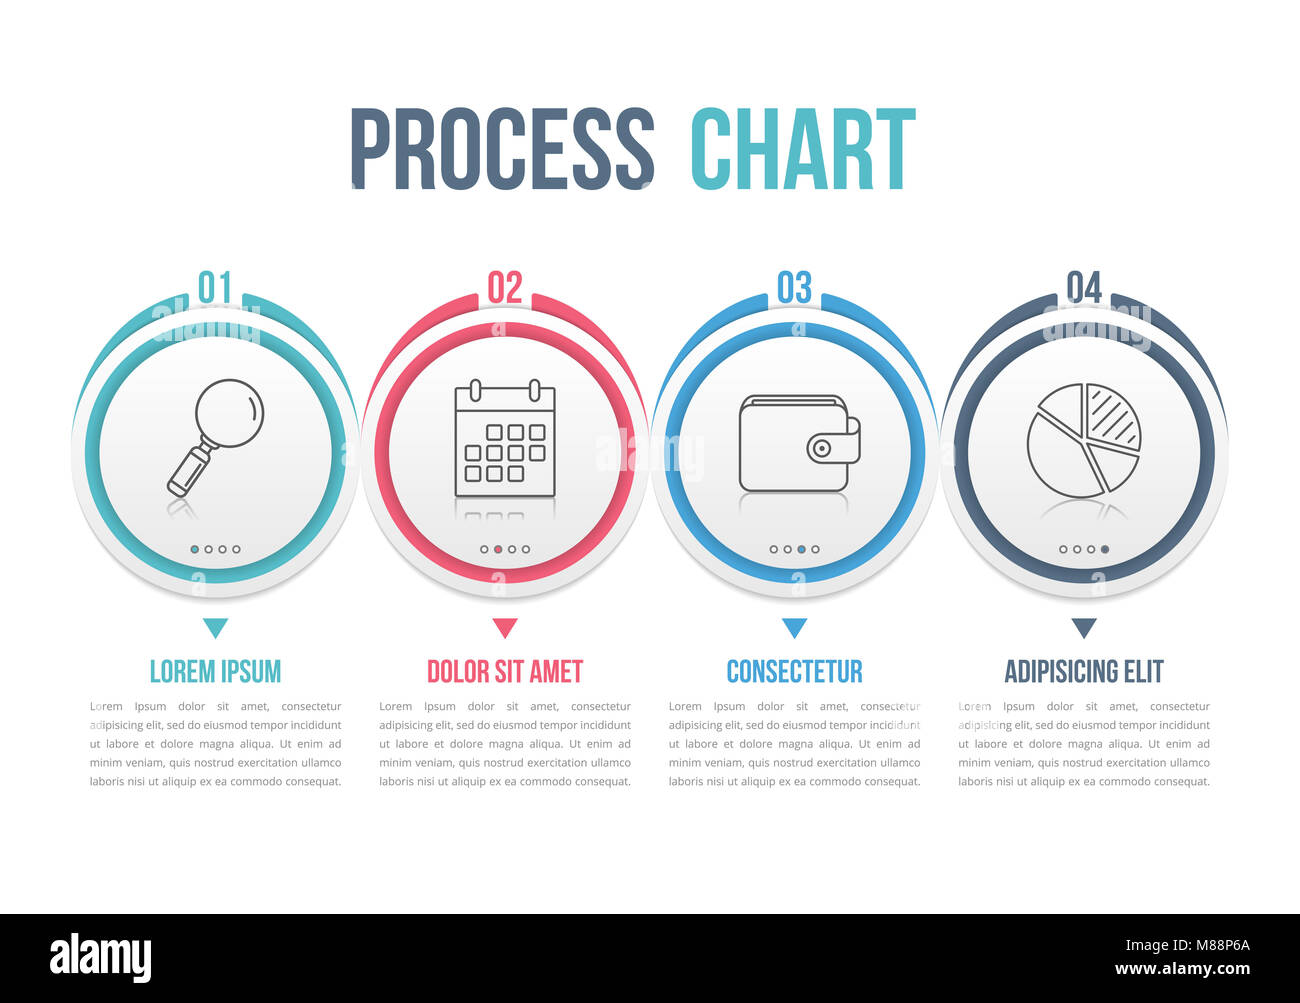 process diagram template with circles flowchart or workflow with